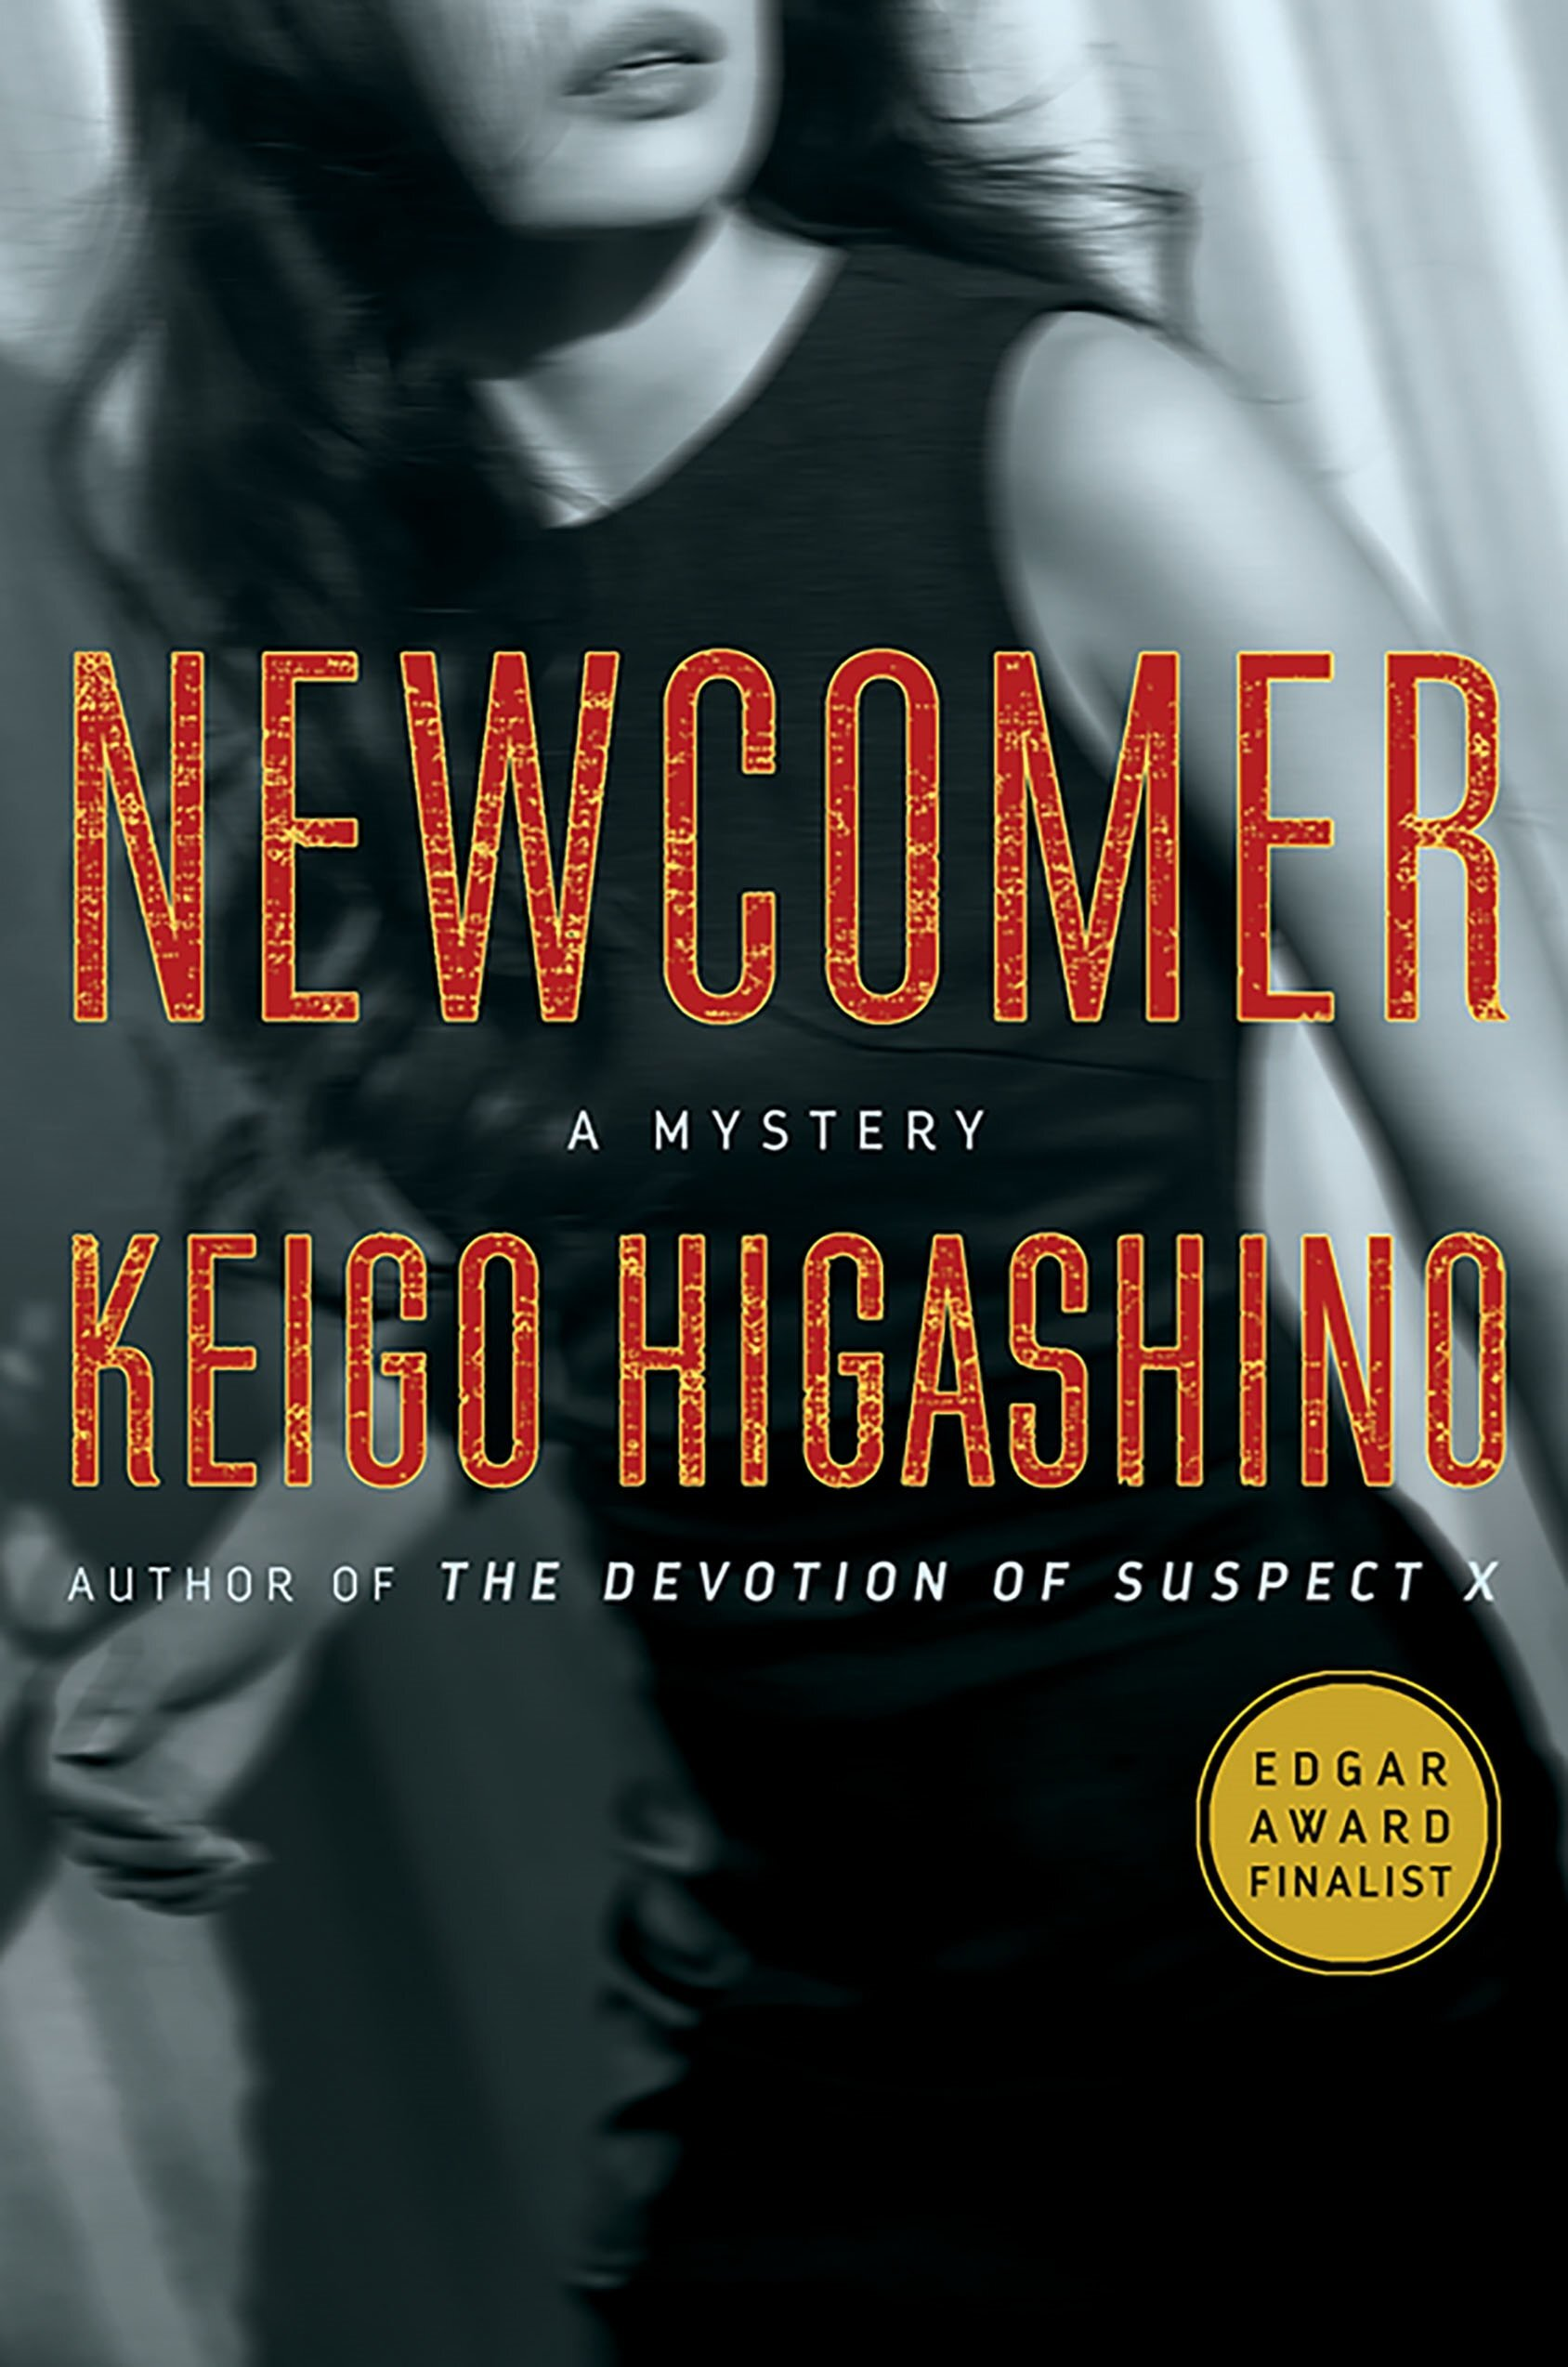 One way to study writing and improve your skills is to read like a writer, especially books that challenge your way of thinking about stories.  Newcomer  by Keigo Higashino is murder mystery with an nontraditional structure. Read his novel to learn how to develop a spiral story structure, characters, and setting.